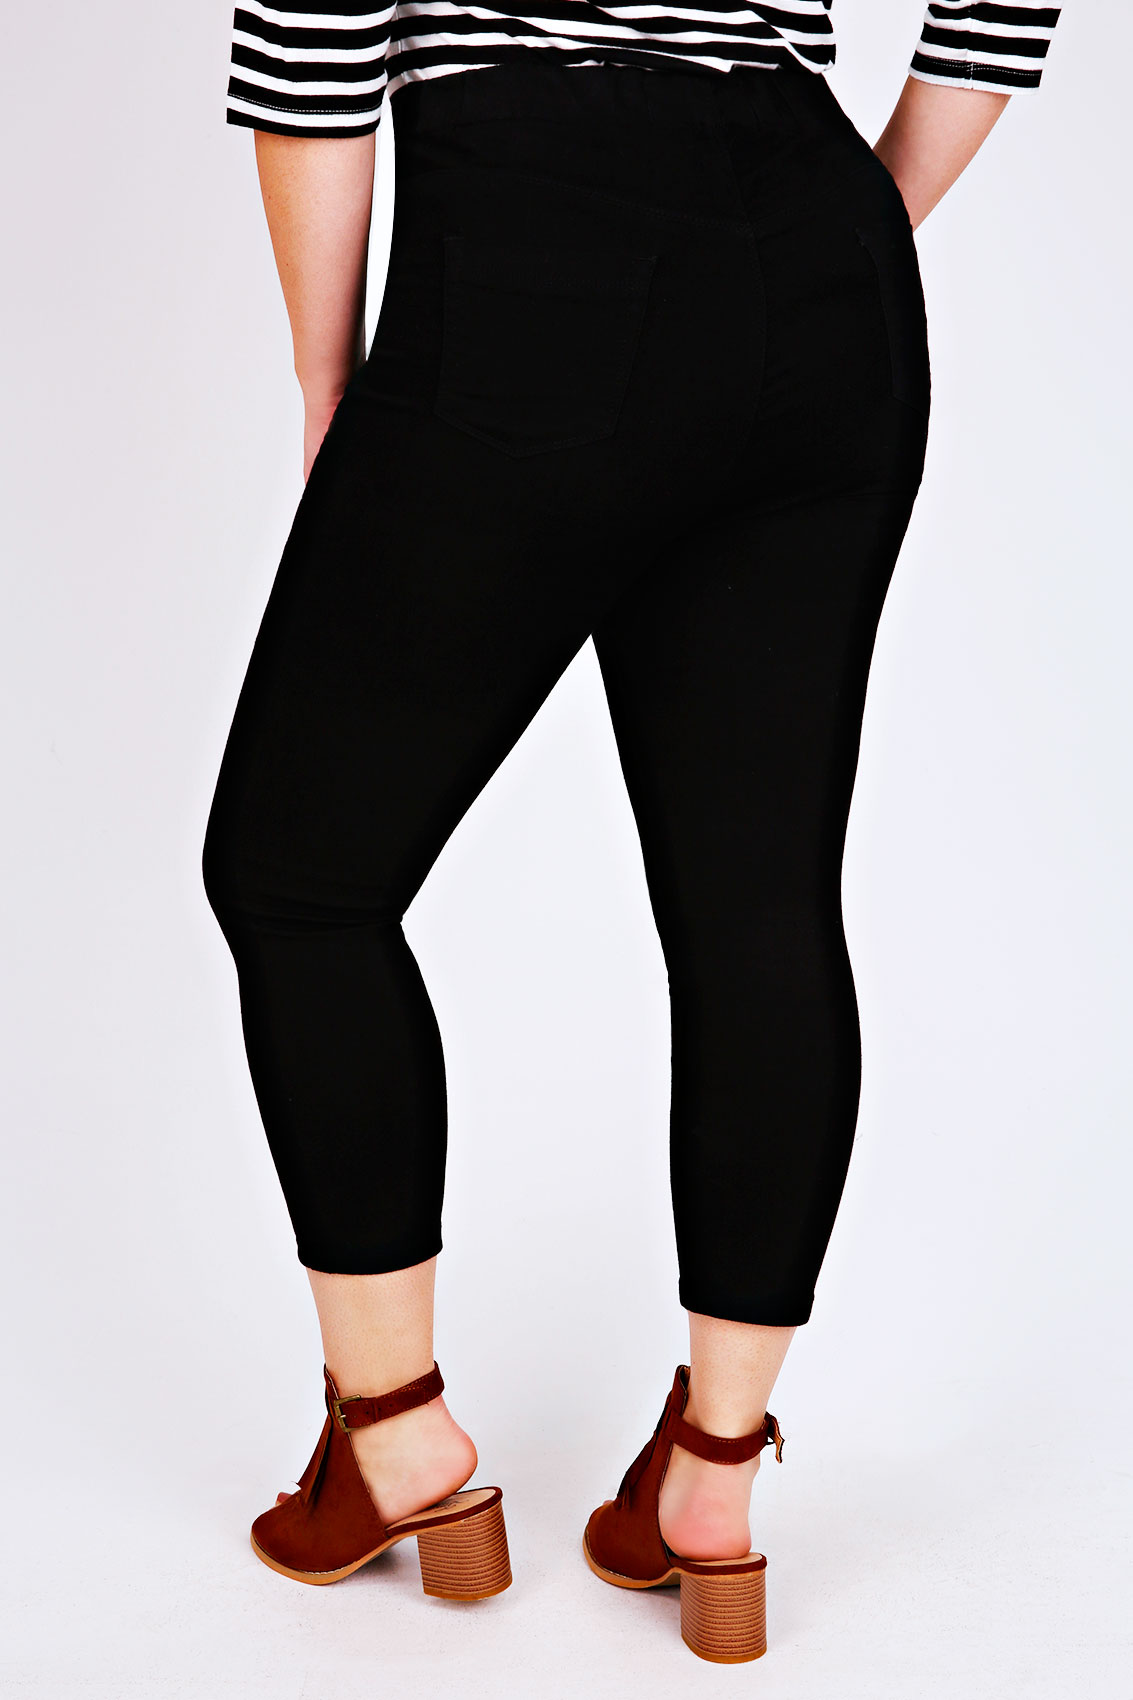 Jeggings For a flattering and comfortable fit, choose your favourite from the Dorothy Perkins figure-slimming jeggings collection. Offering one of our most popular denim fits, our ultra-chic jeggings are a versatile style staple and the ultra-soft fabric makes them incredibly comfortable to wear too.